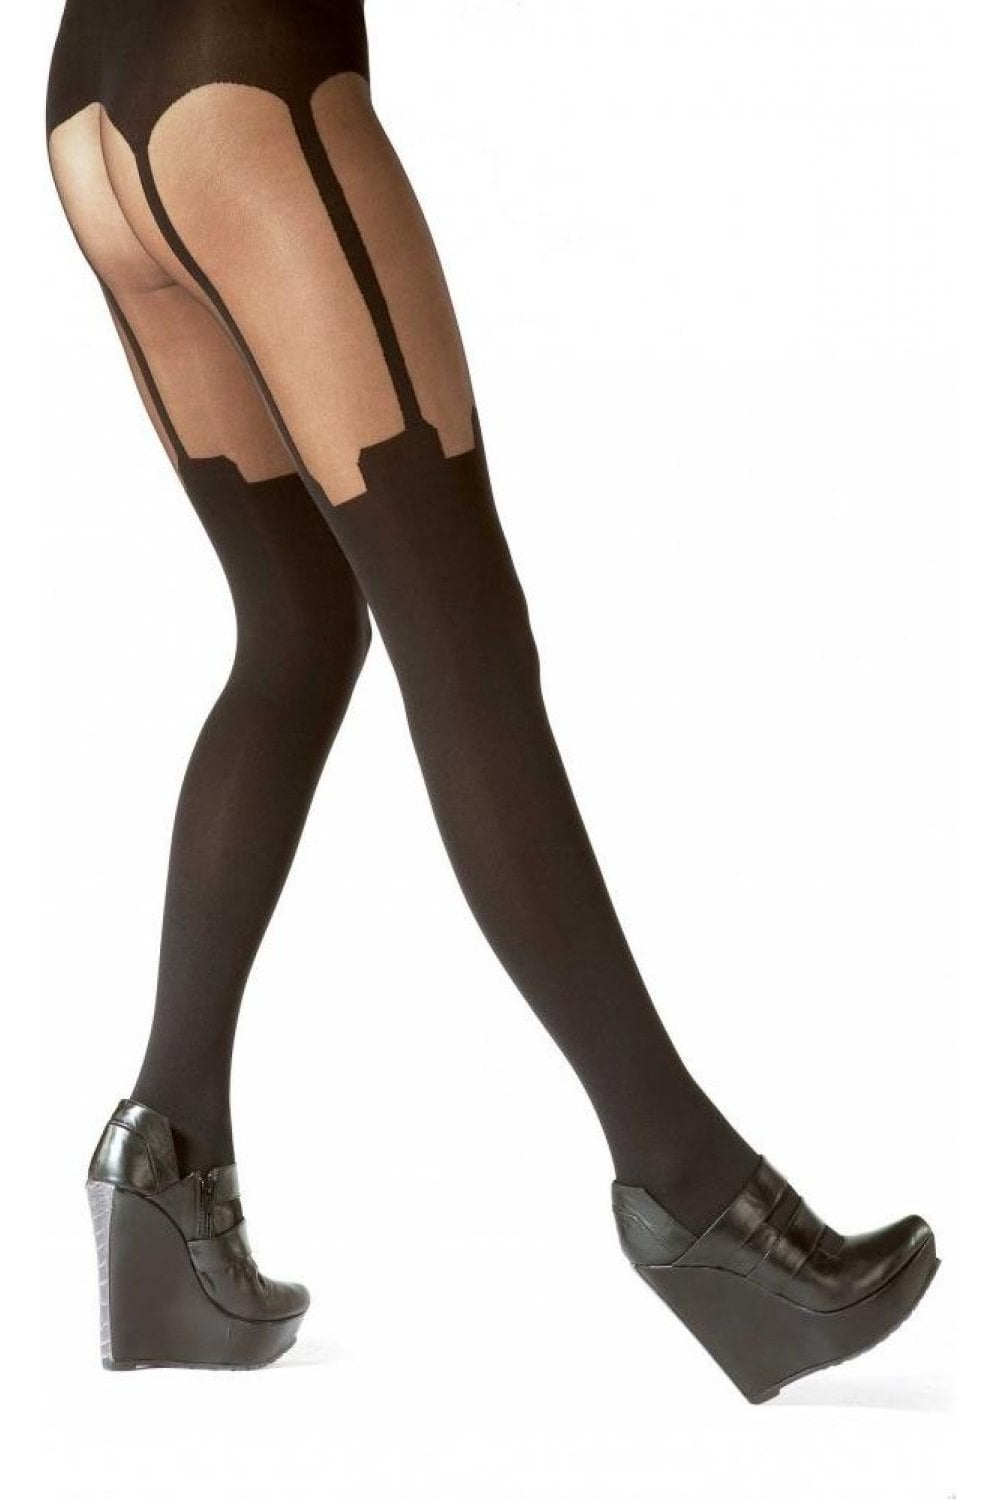 how to put on suspenders tights